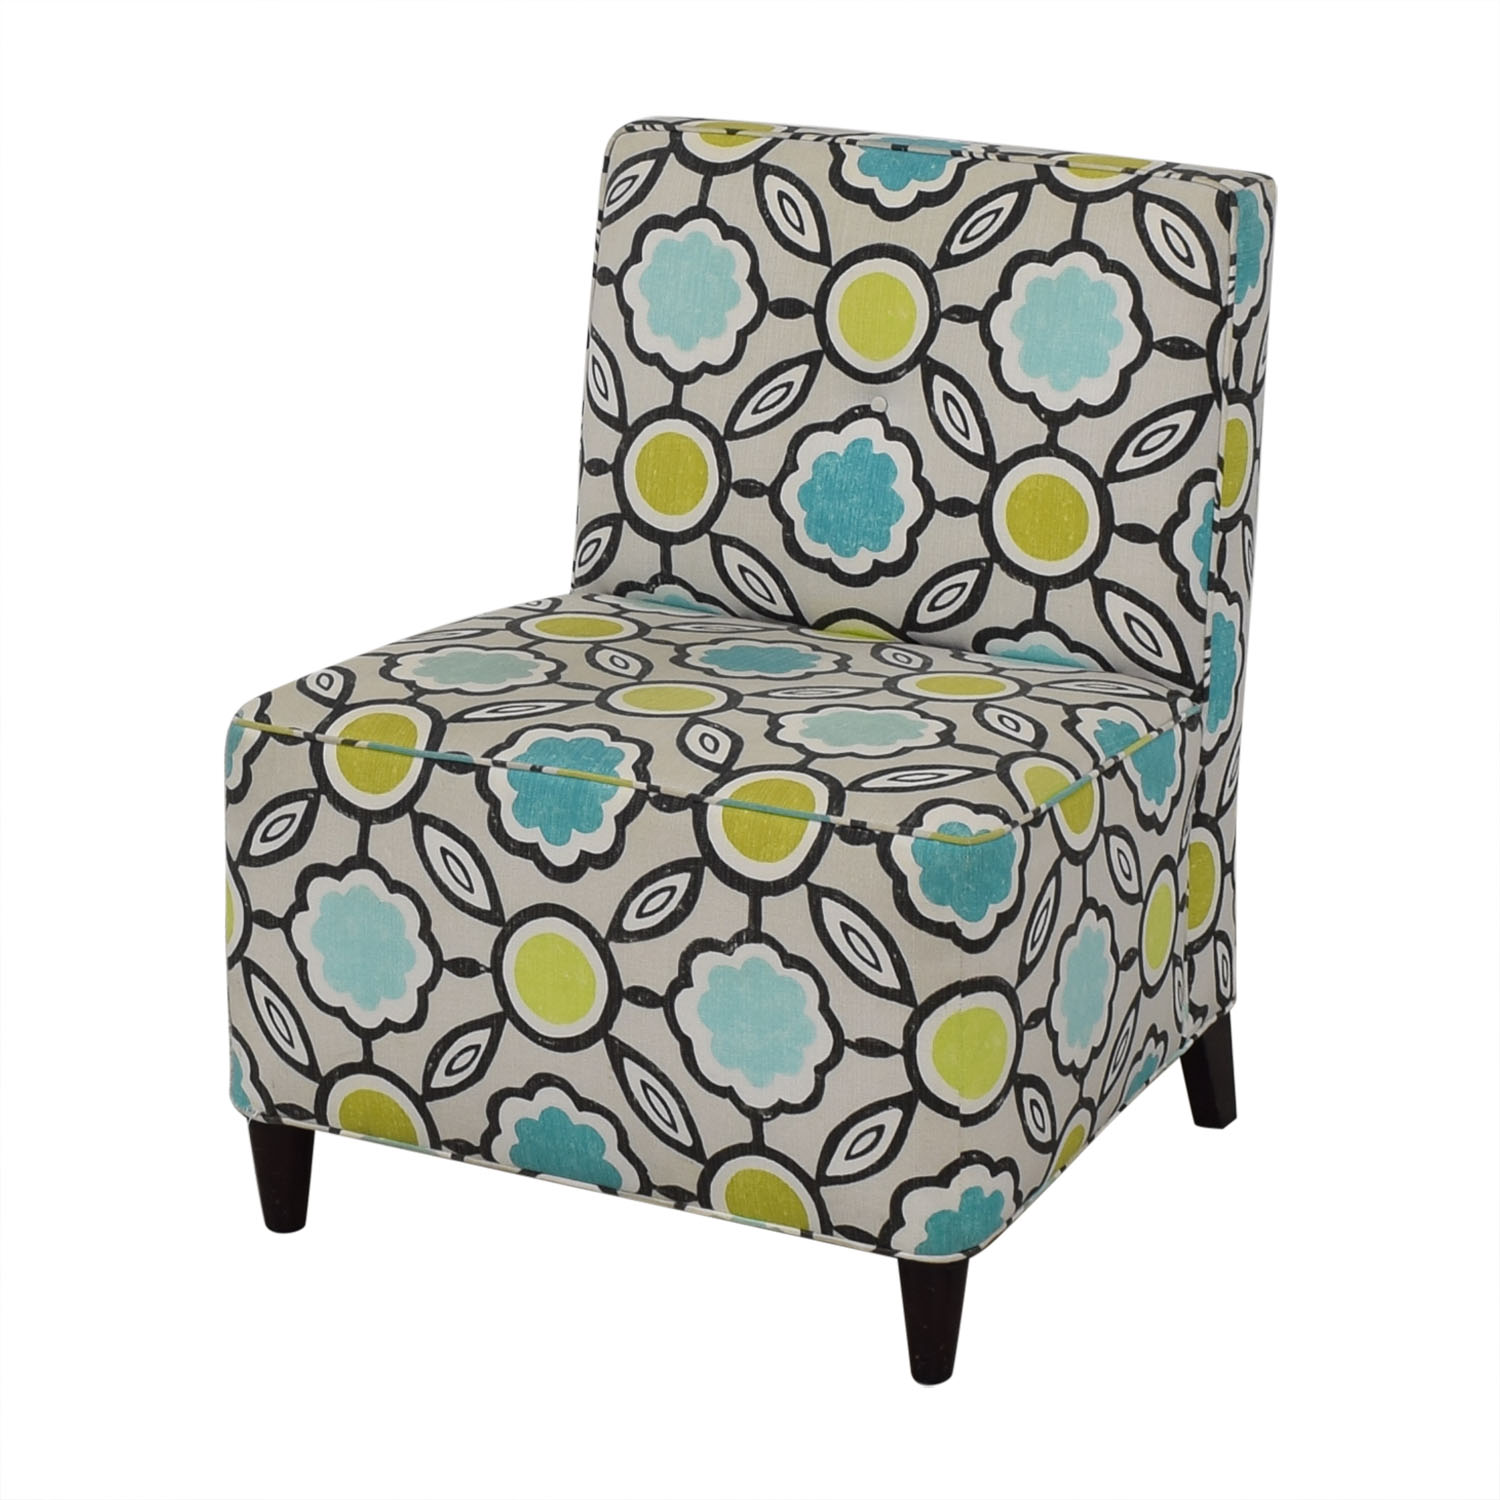 Stewart Furniture Stewart Furniture Armless Living Room Chairs nj